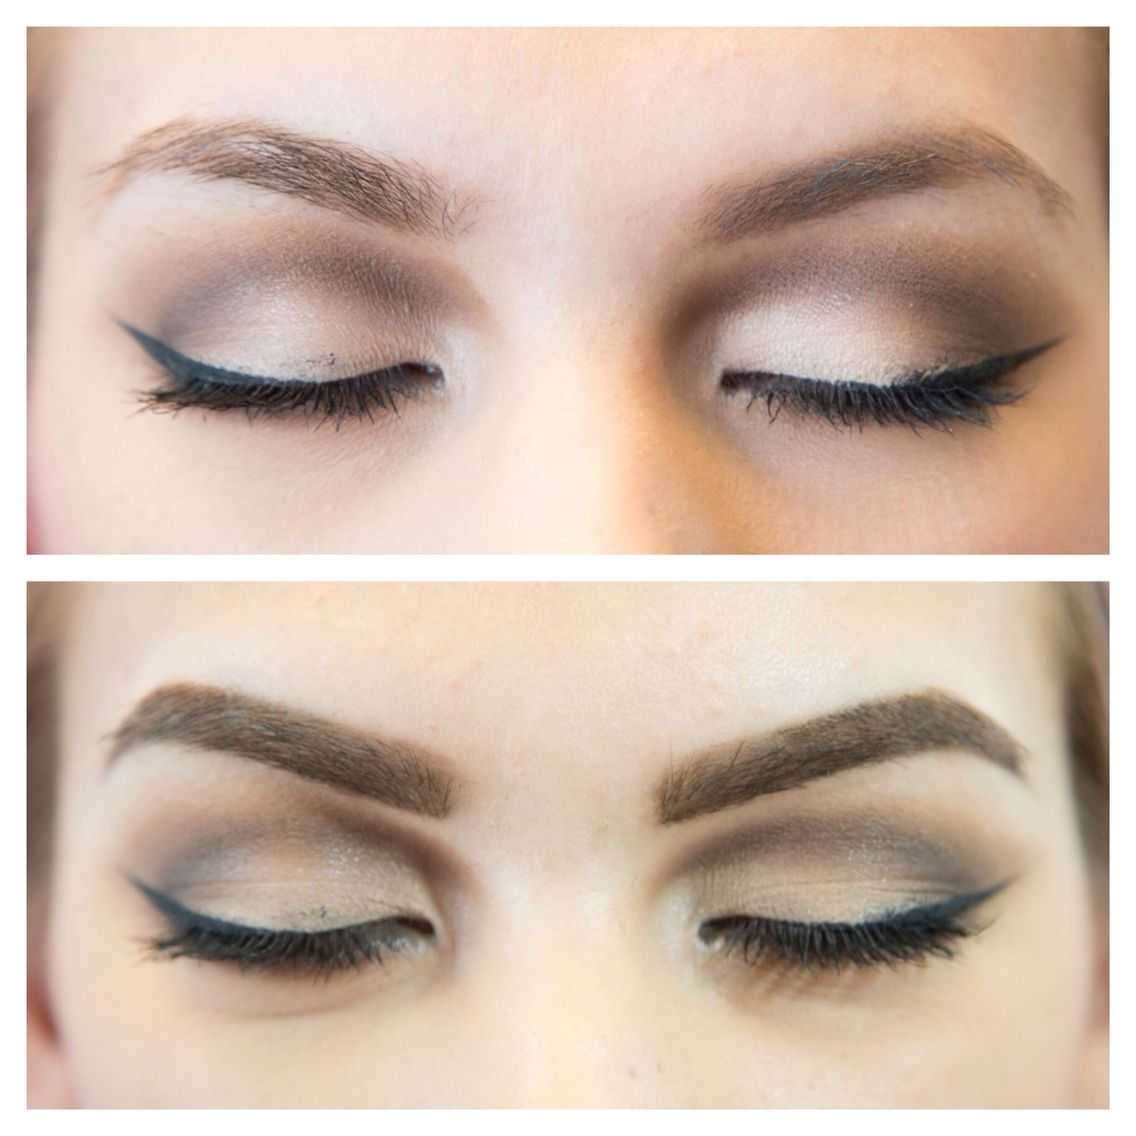 Before and after eyebrow extension. | Eyebrow extensions ...